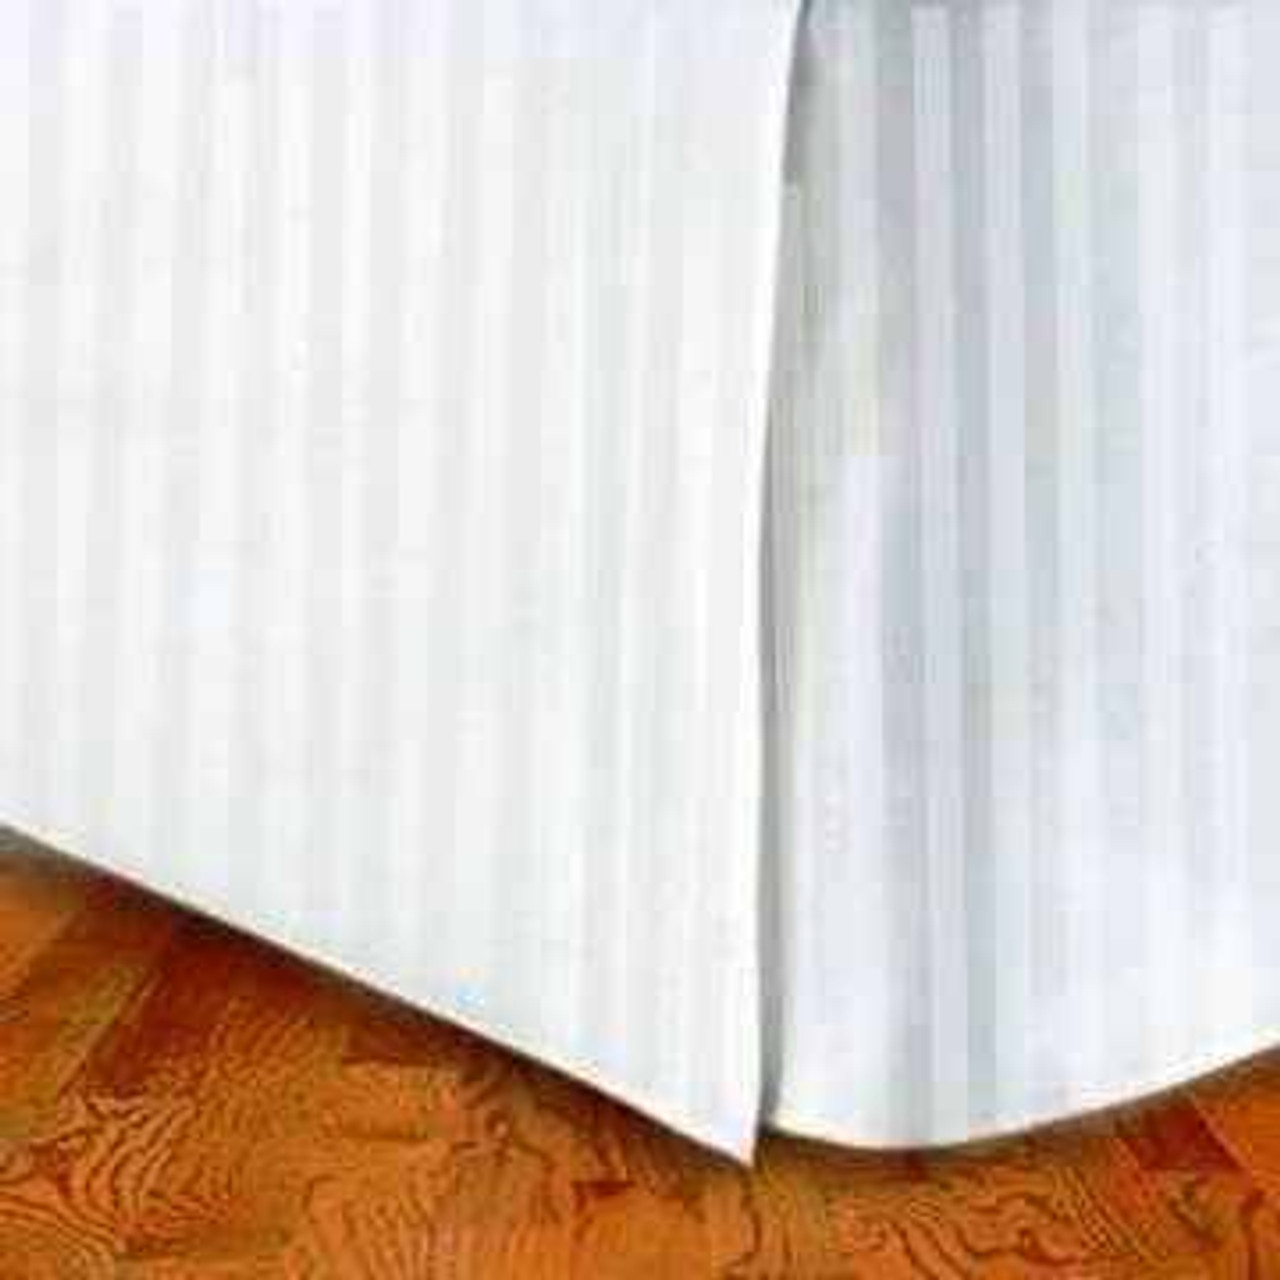 1888 Mills 1888 Mills or Magnificence Bed Skirt